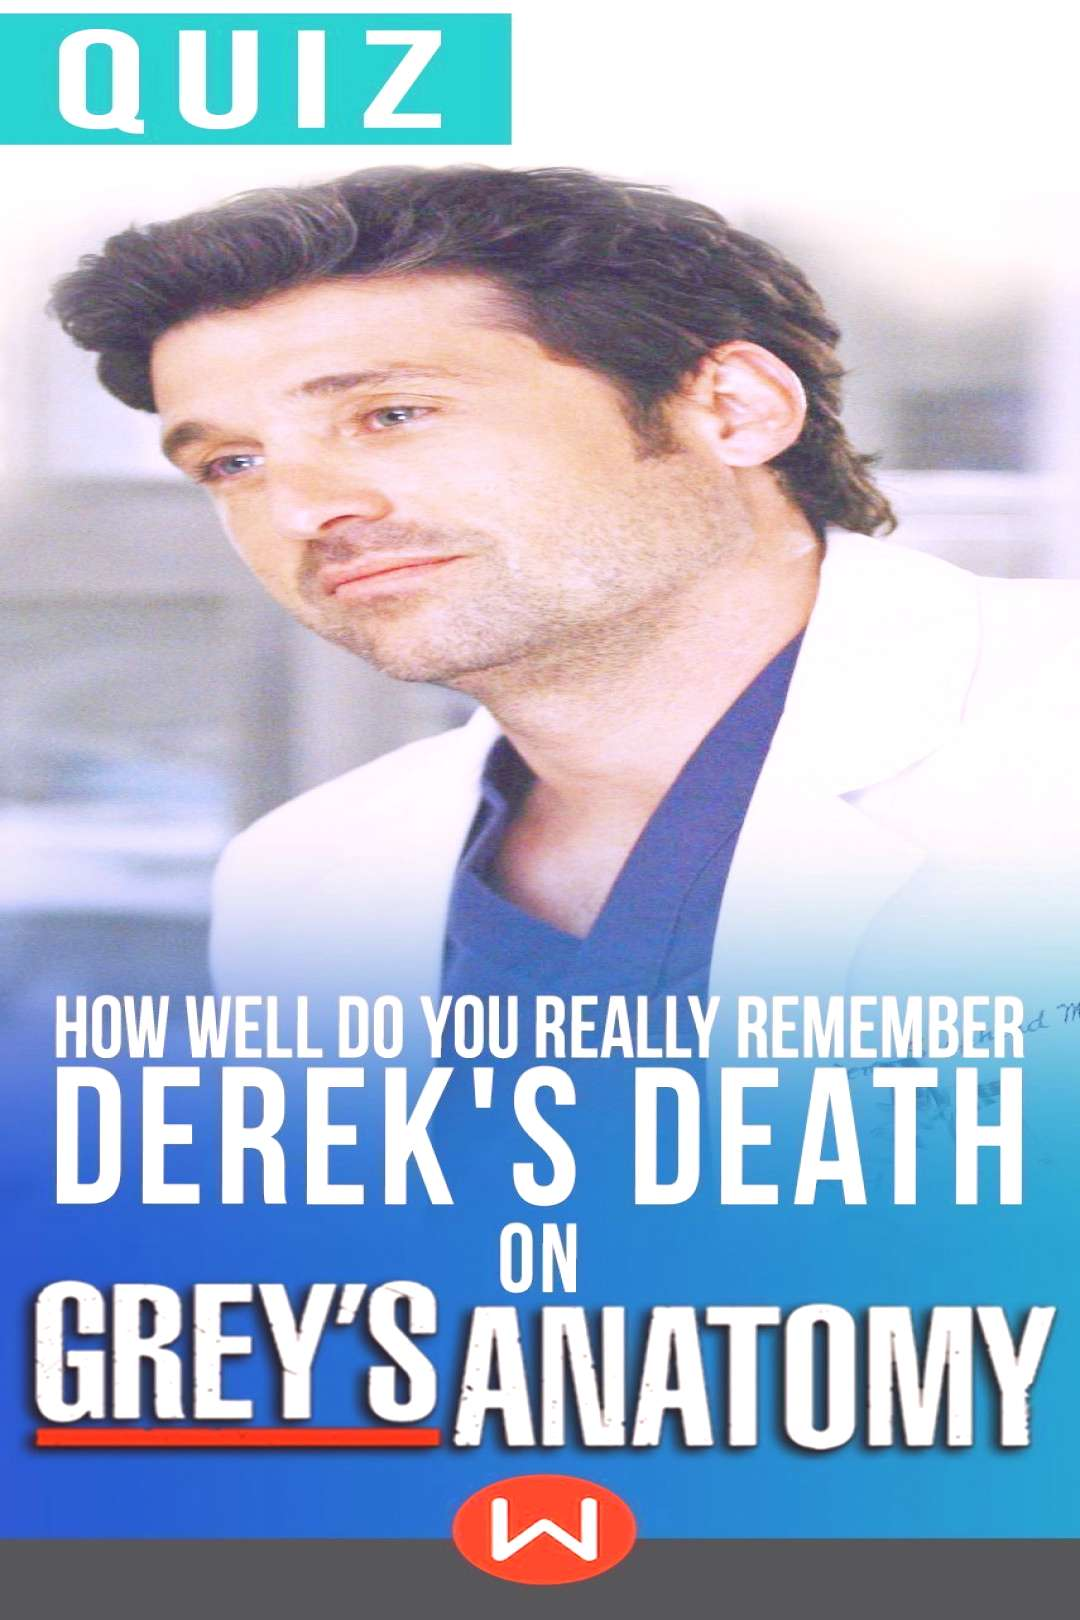 Quiz How Well Do You Really Remember Dereks Death On Greys Anatomy? - -